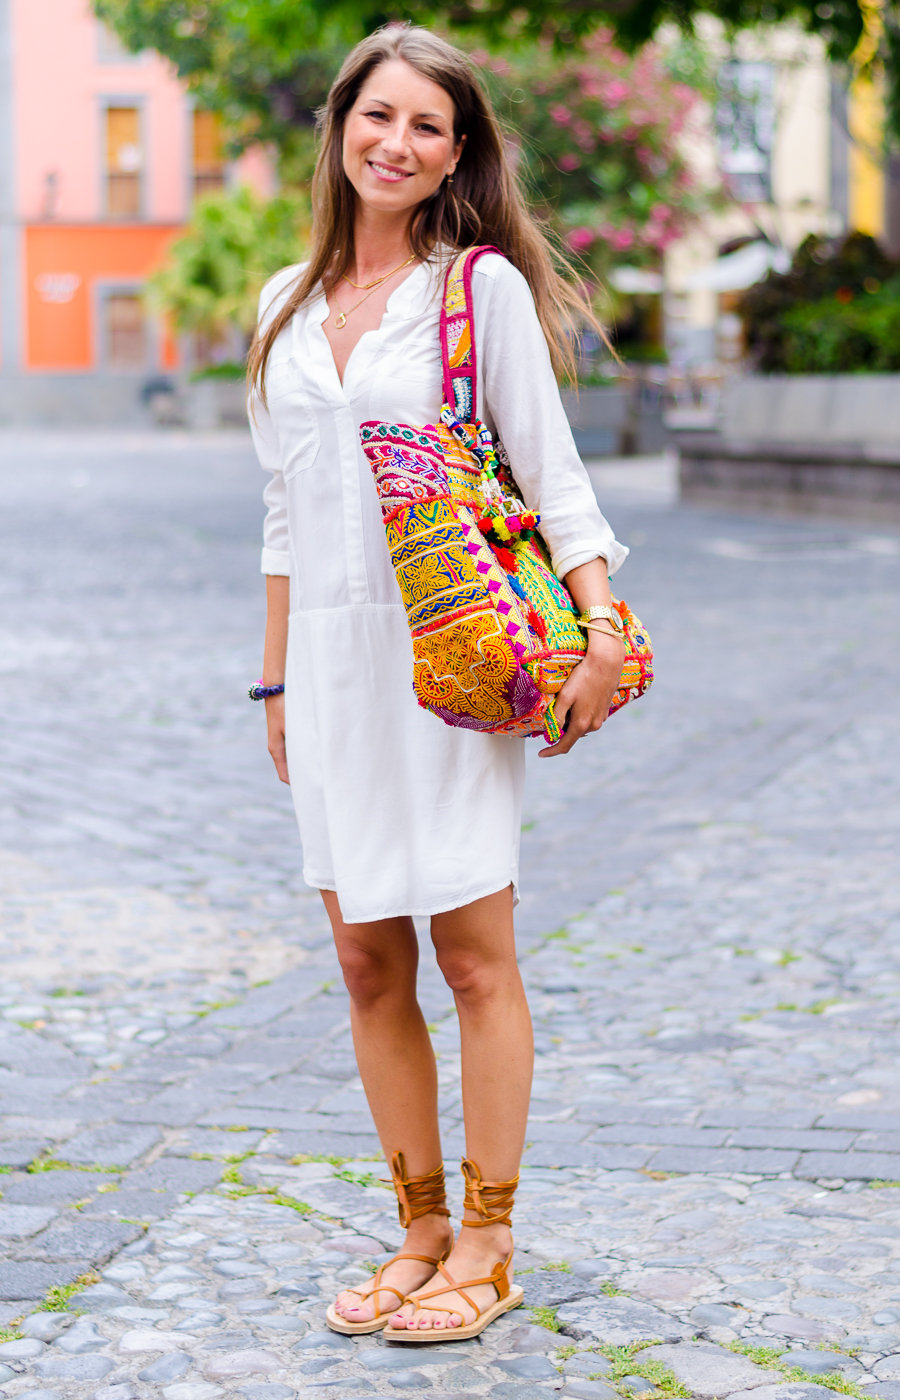 gladiator sandals & tunic dress